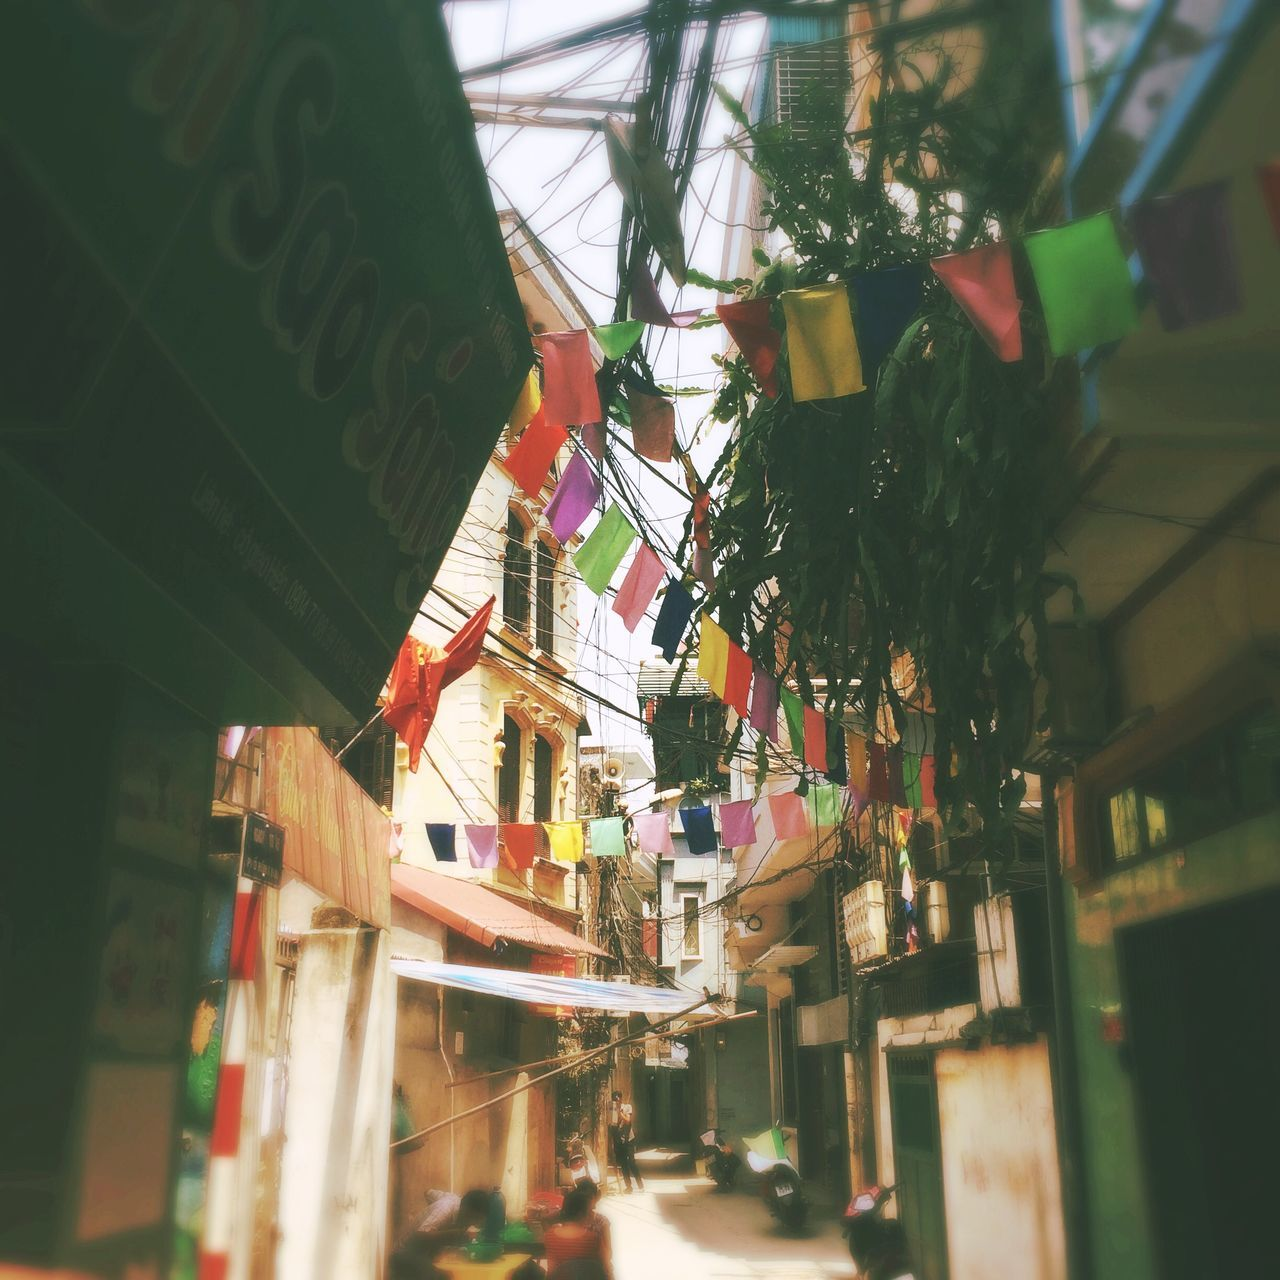 Low Angle View Of Narrow Alley